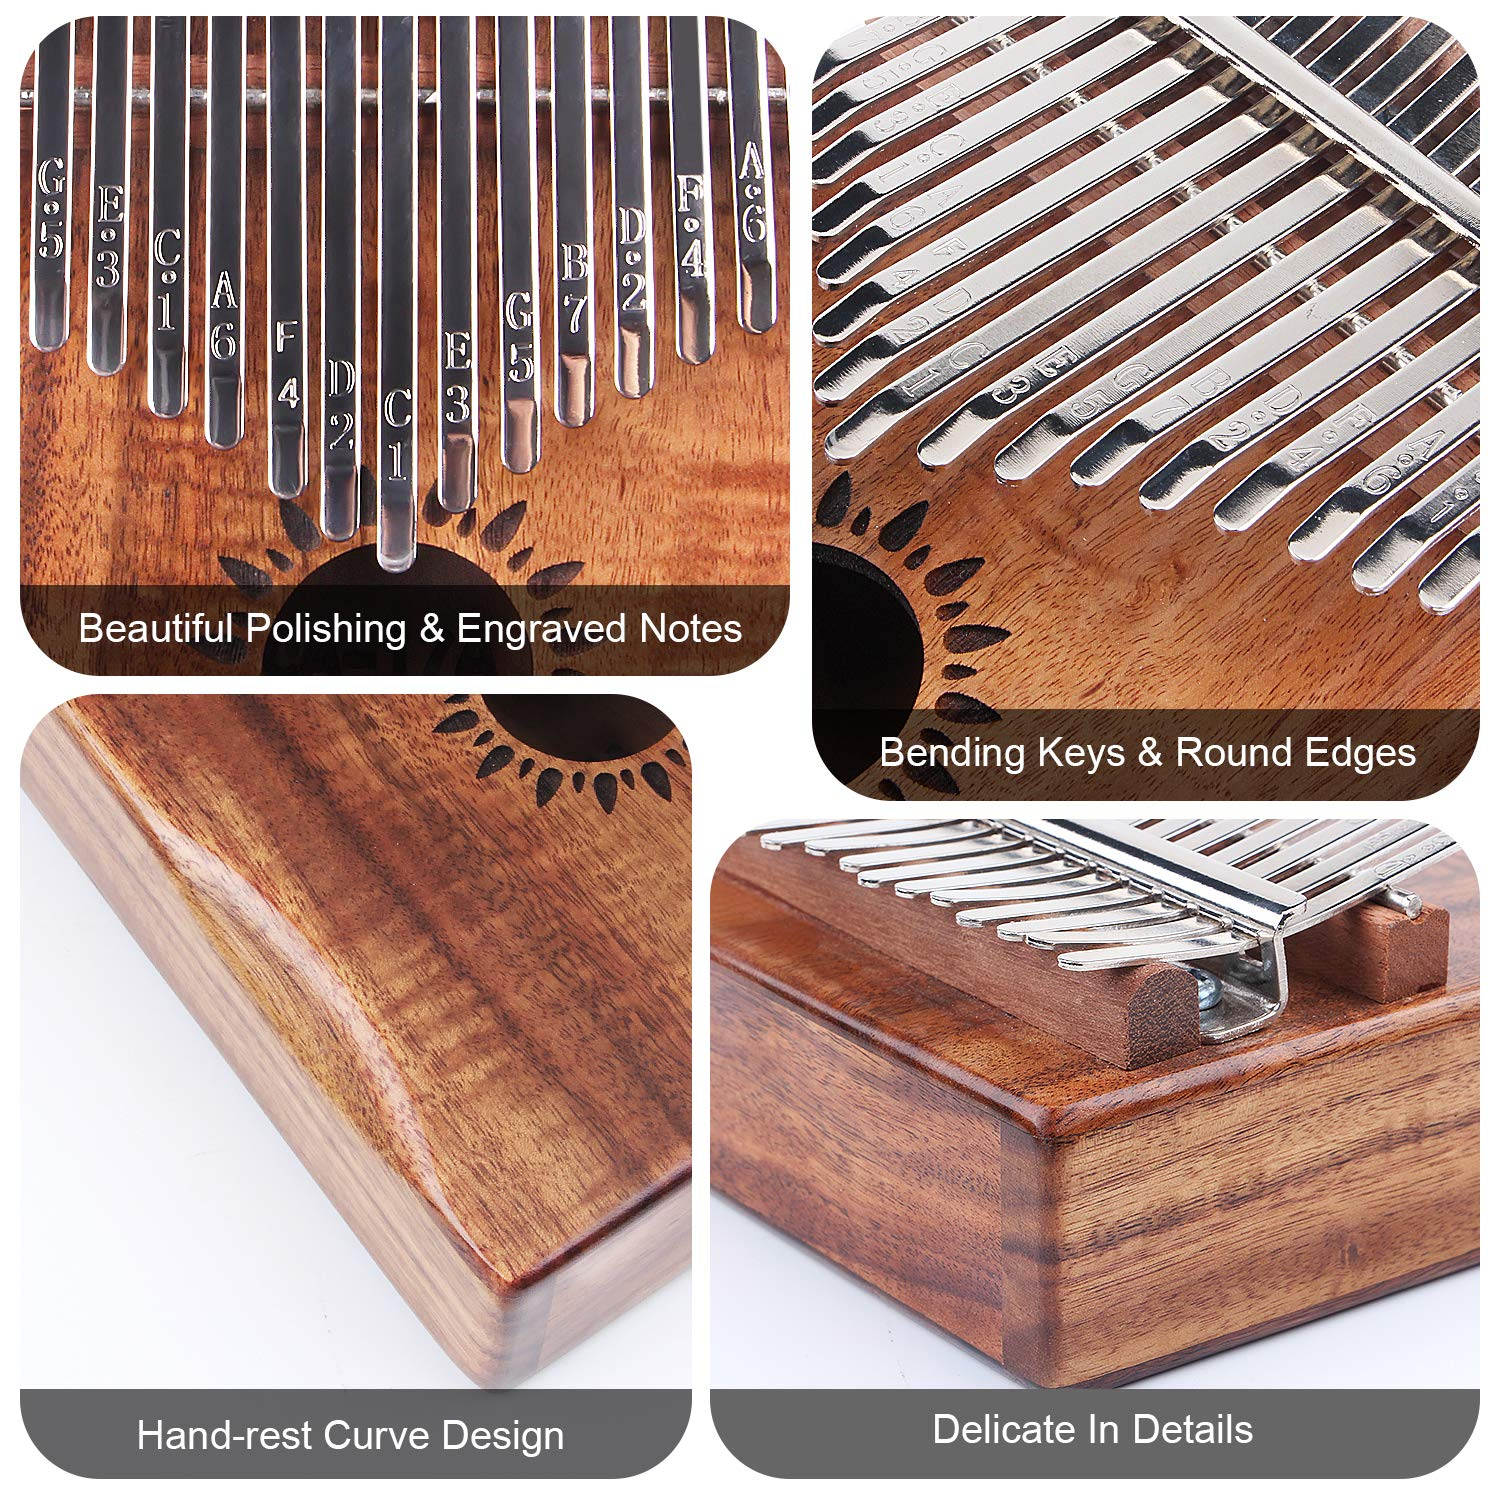 Kalimba Thumb Piano 17 Key, Portable Mbira Wood Finger Piano with 2 Bag and Sheet Music, Gifts for Kids Adult Beginners Professionals by HONHAND (Image #3)